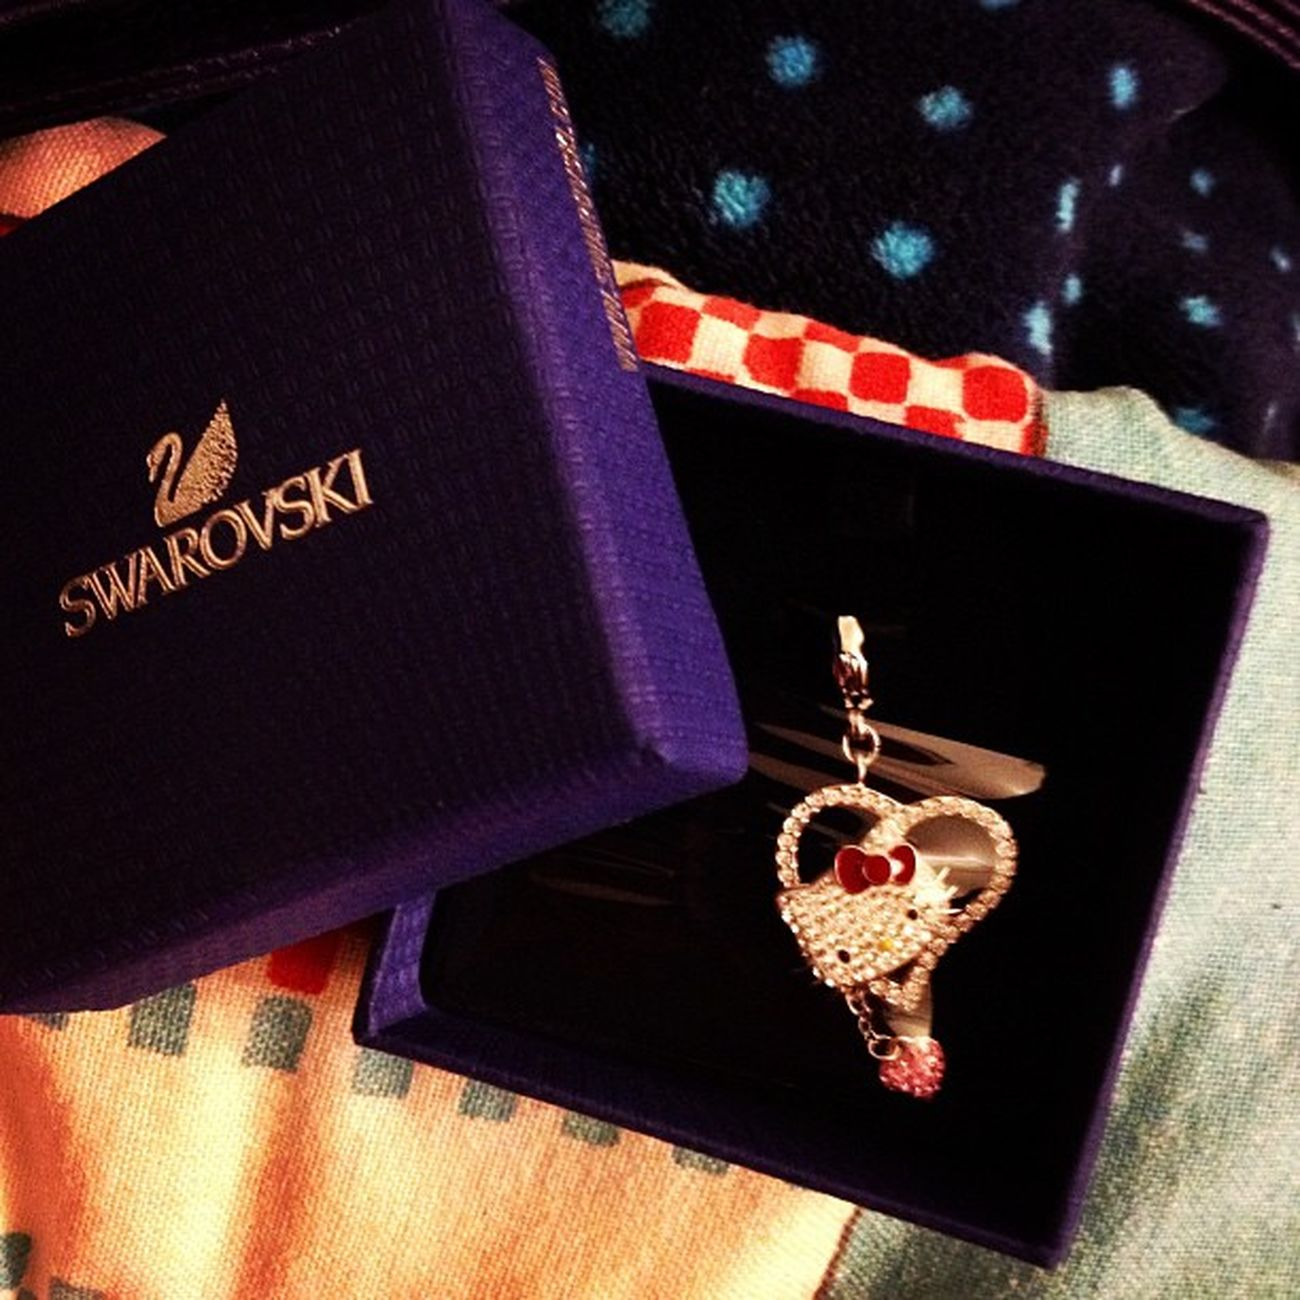 After 5 months finally saved up enough to buy another charm!! 😊 Swarovski Charmsbyswarovski Iloveswarovski Swarovskiaddict Addictedtoswarovski Swarovskihellokittycharm Swarovskihkcharm Hellokitty Charm Hk Ilovehellokitty Hellokittyaddict Addictedtohellokitty